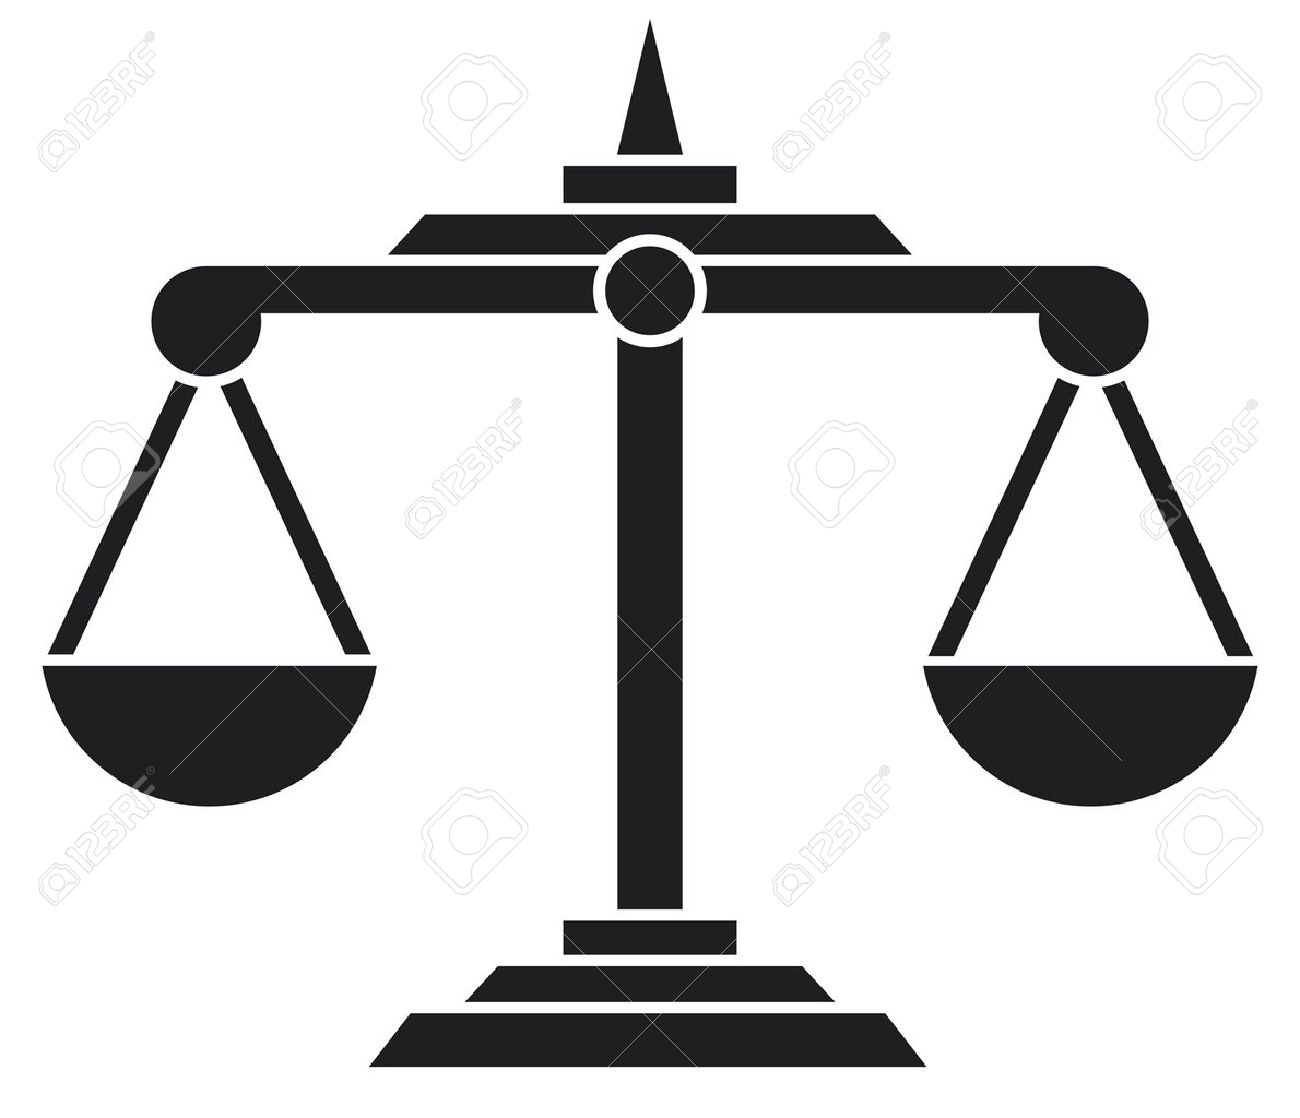 Scales Of Justice Symbol Royalty Free Cliparts Vectors And Stock